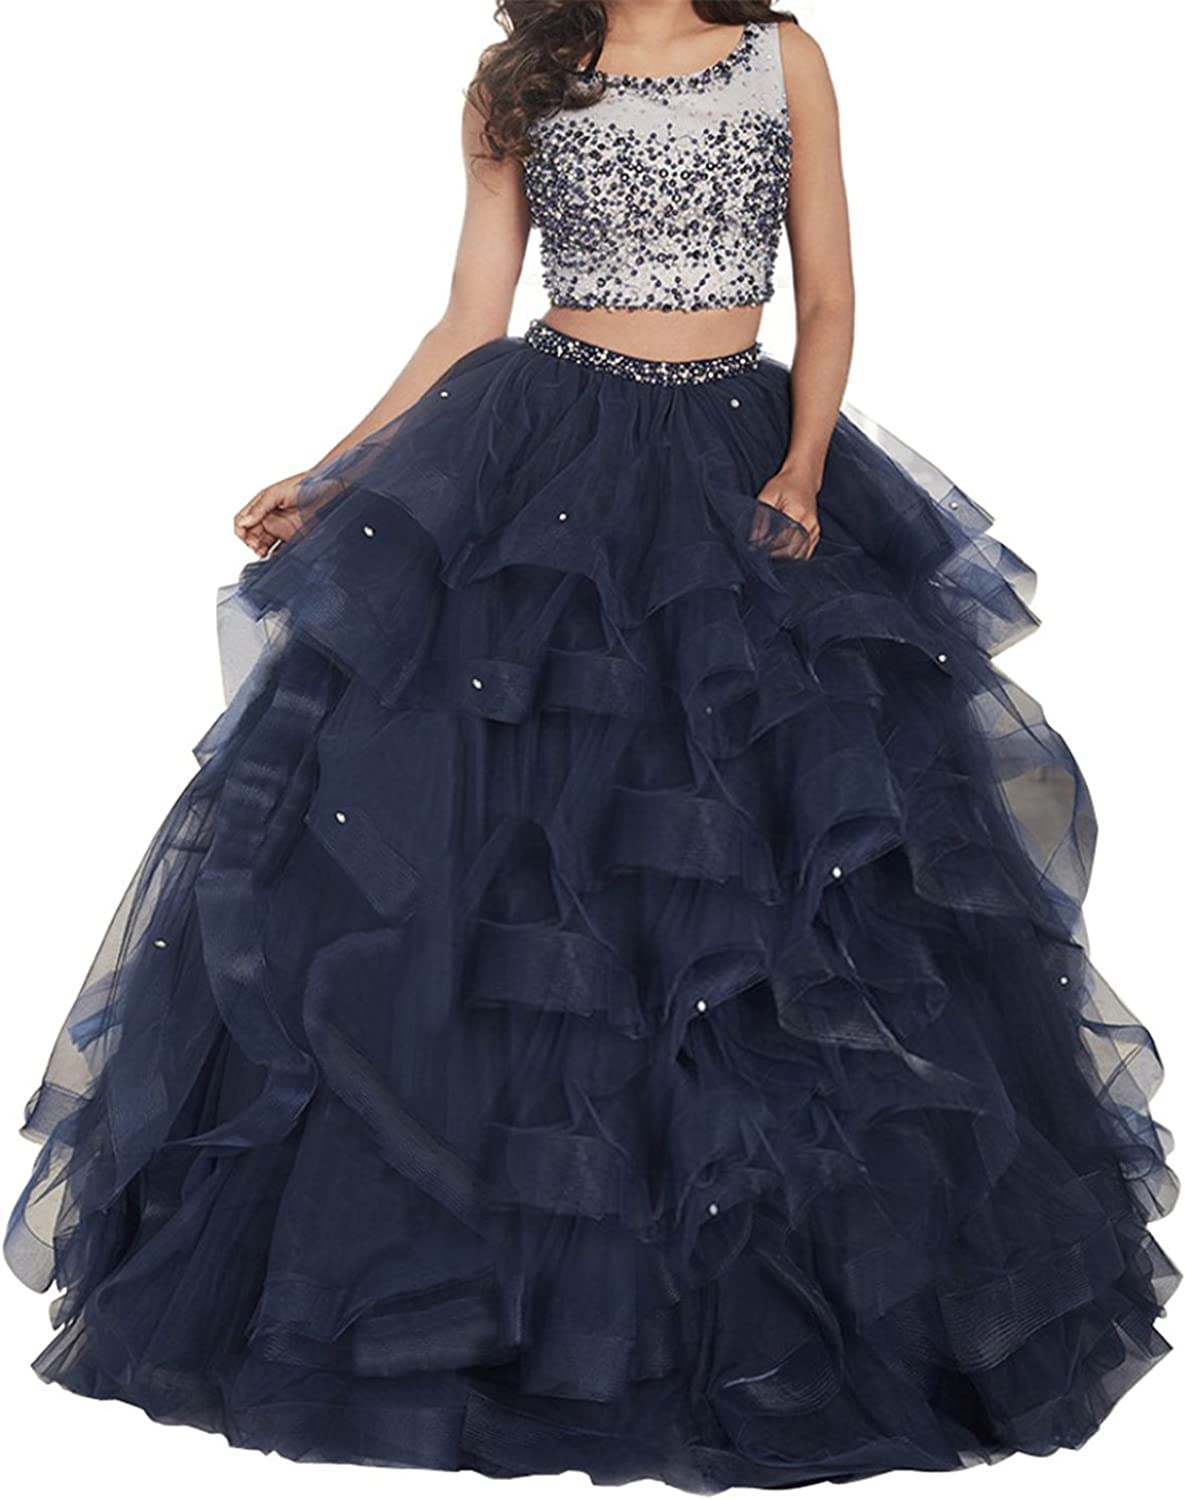 TuanYuan Women 2 Pieces Full Beaded Evening Party Gowns Quinceanera Dresses